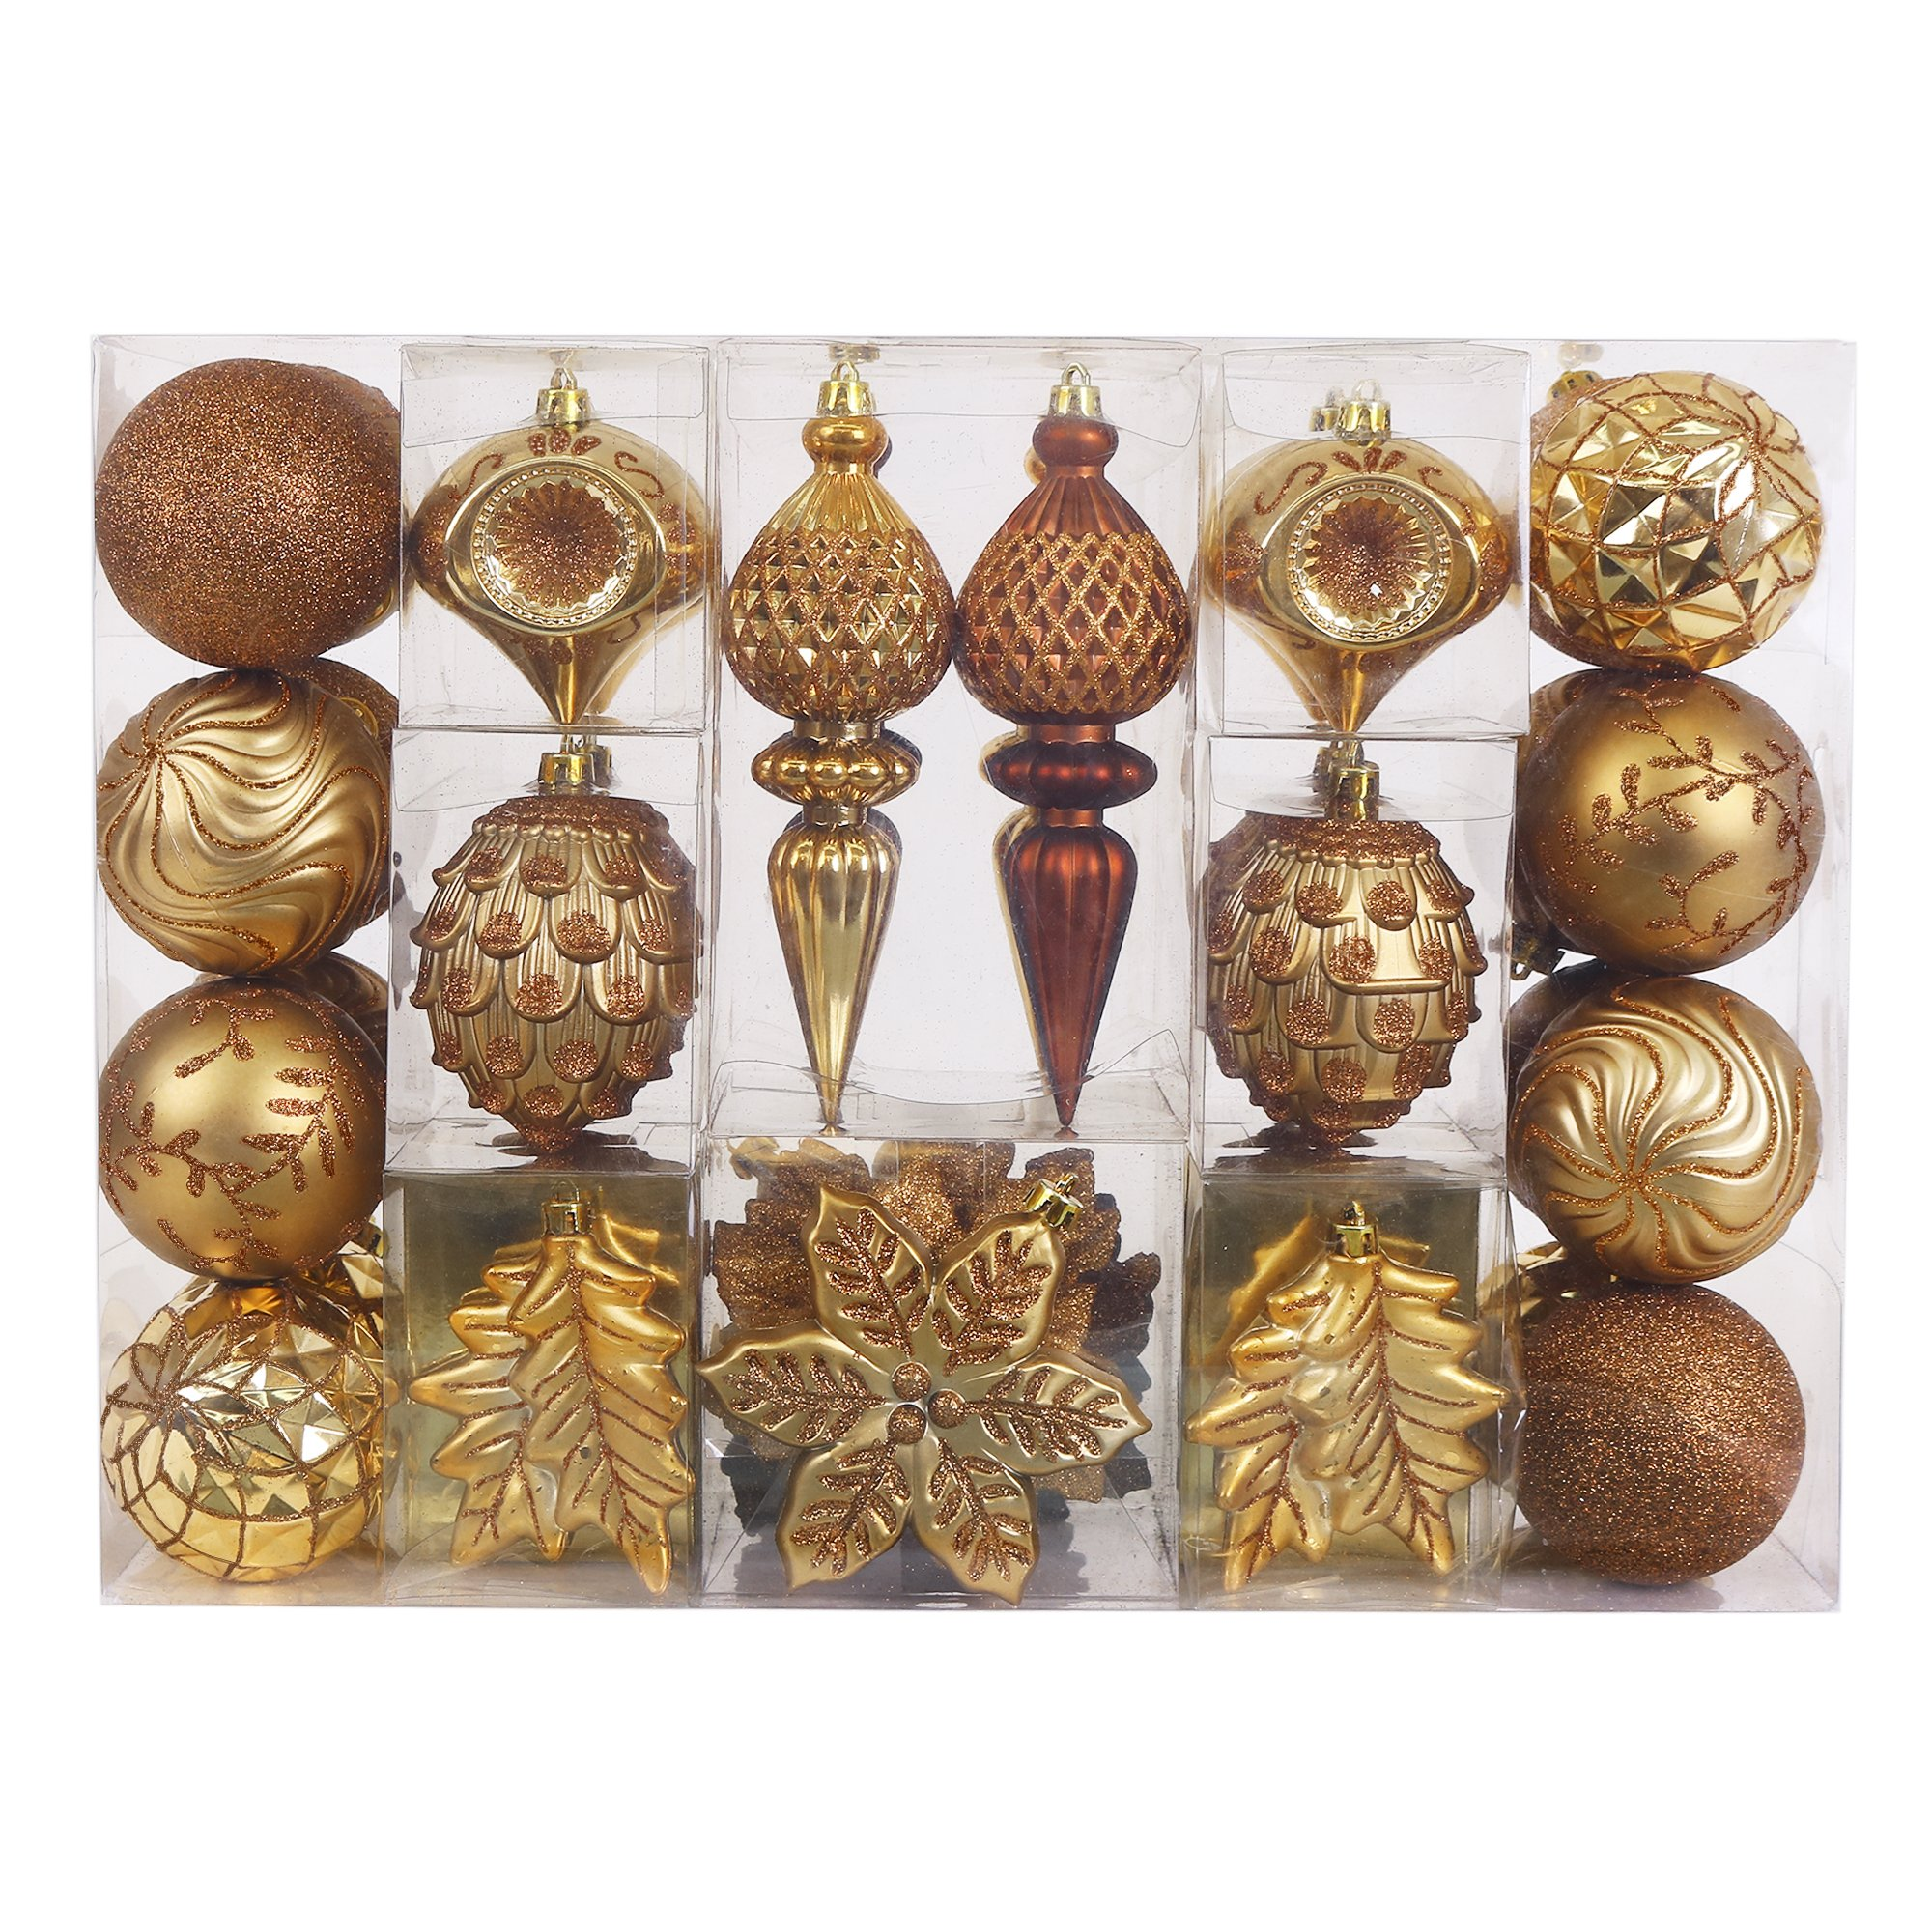 V&M VALERY MADELYN 50ct Shatterproof Bauble Christmas Ornaments Woodland,8CM-19.5CM/3.15inch-7.68inch,50 Pcs Metal Hooks Included, Themed with Tree Skirt(Not Included)